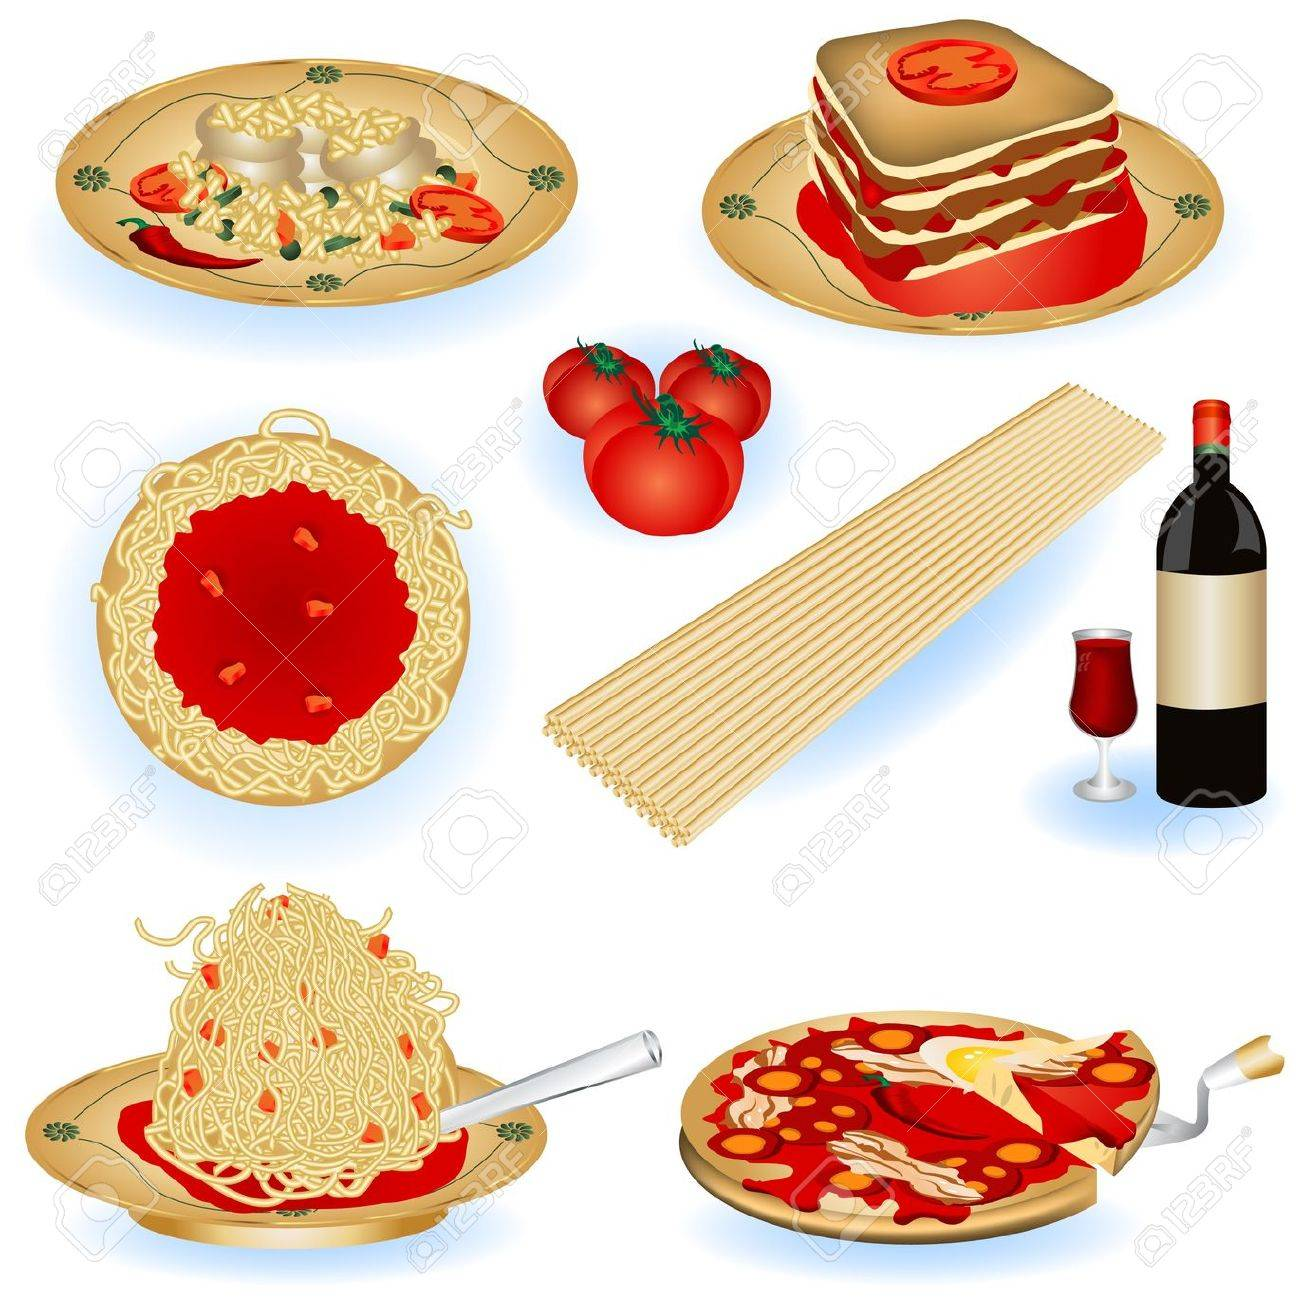 A collection of Italian food color illustrations. - 9200046